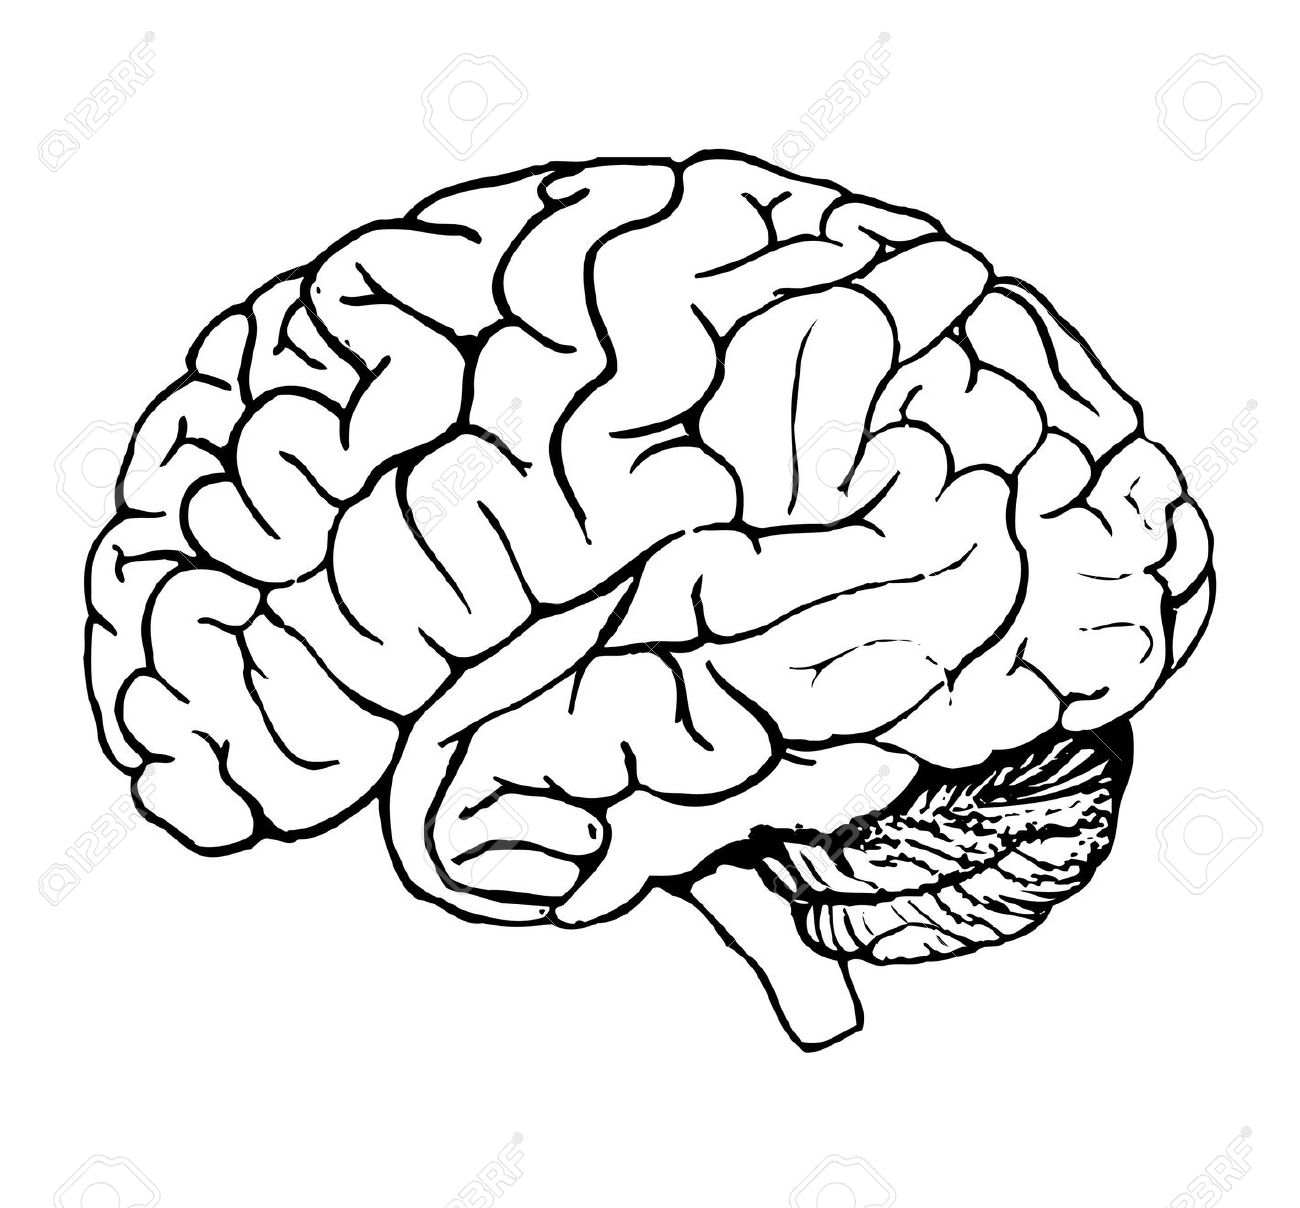 Pictures Of Brains Clipart.